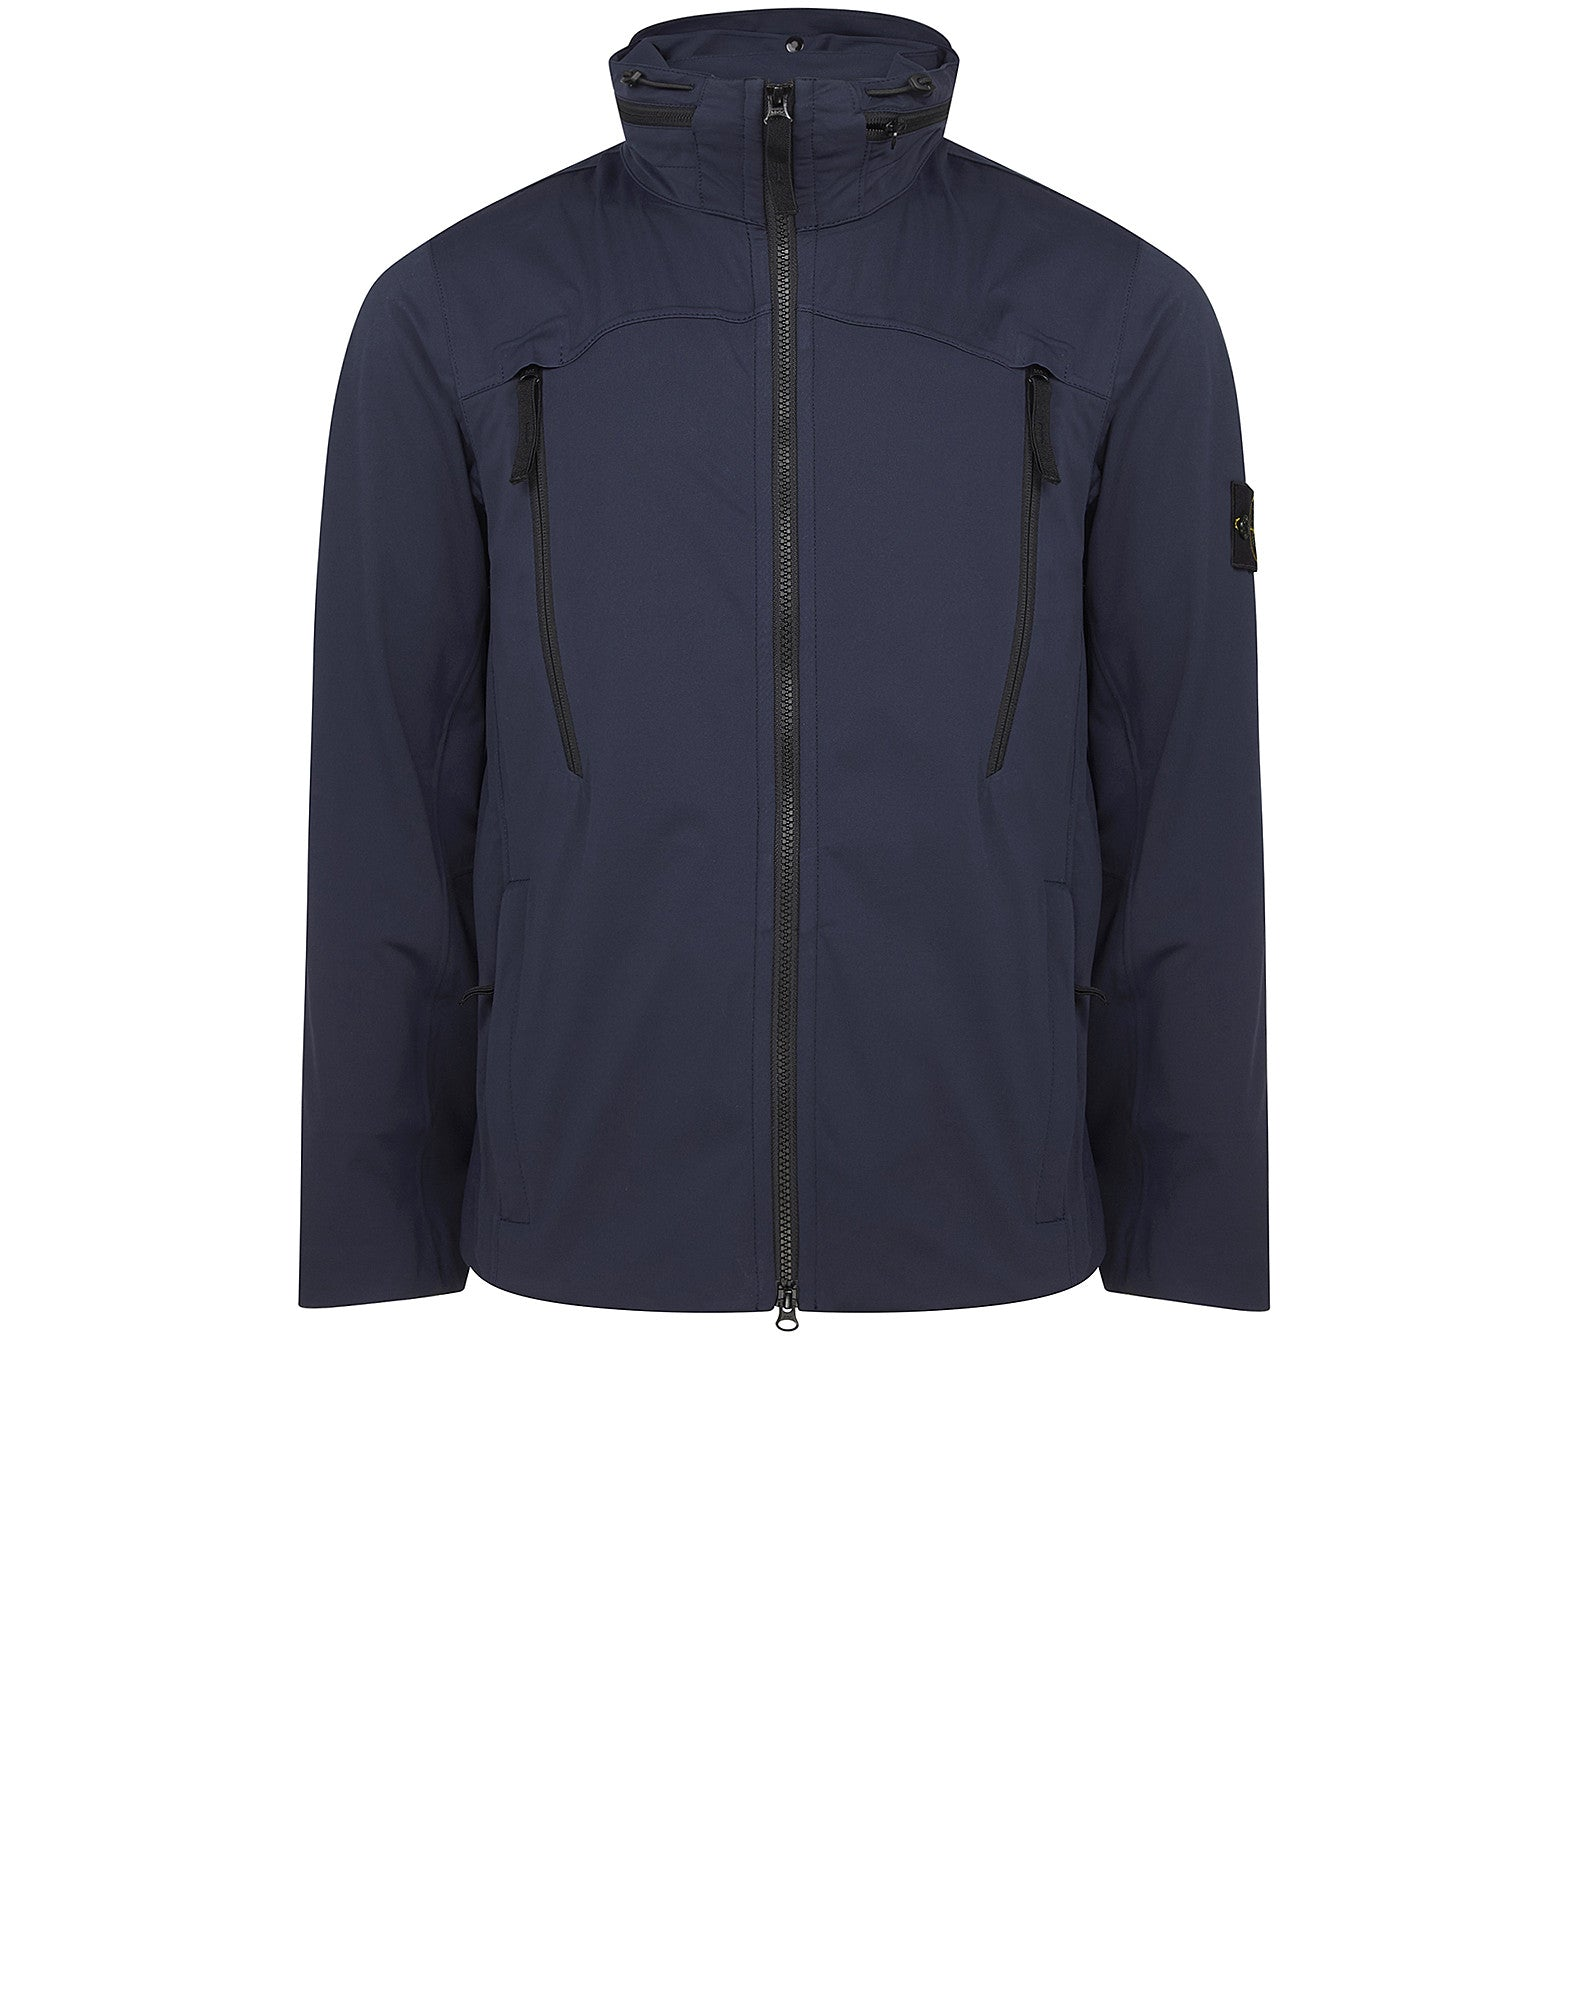 41826 LIGHT SOFT SHELL SI CHECK GRID Jacket in Blue